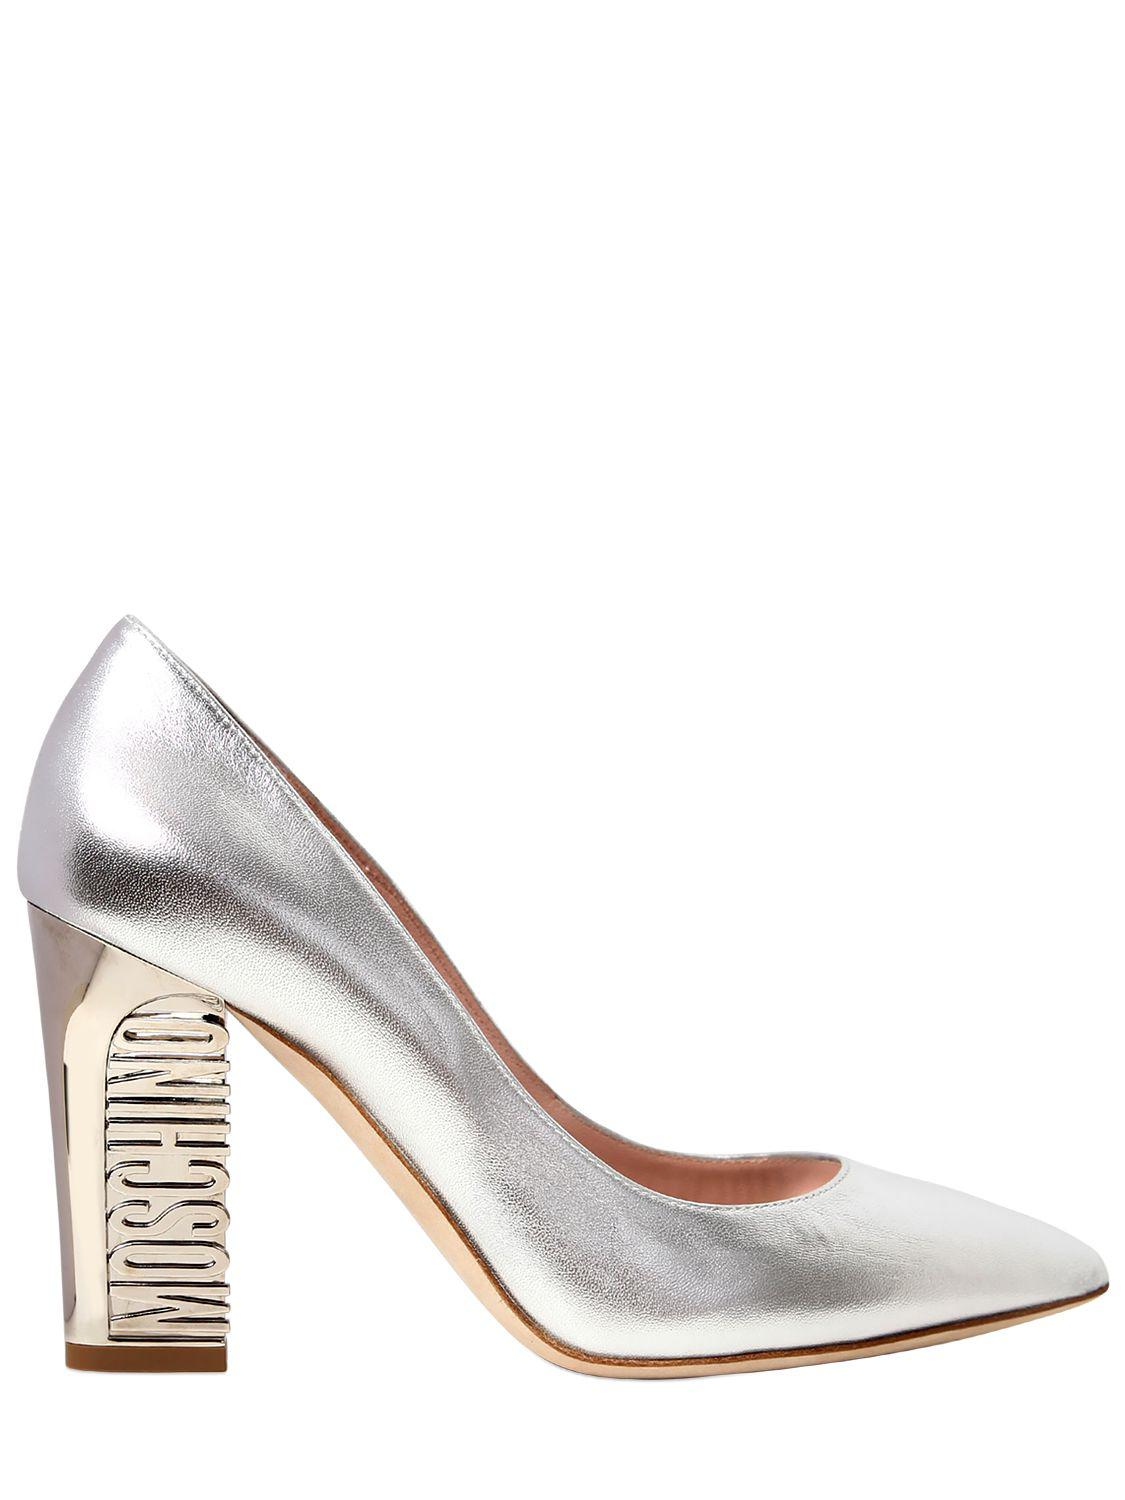 Moschino 100MM LOGO HEEL LEATHER PUMPS W4kZ1h